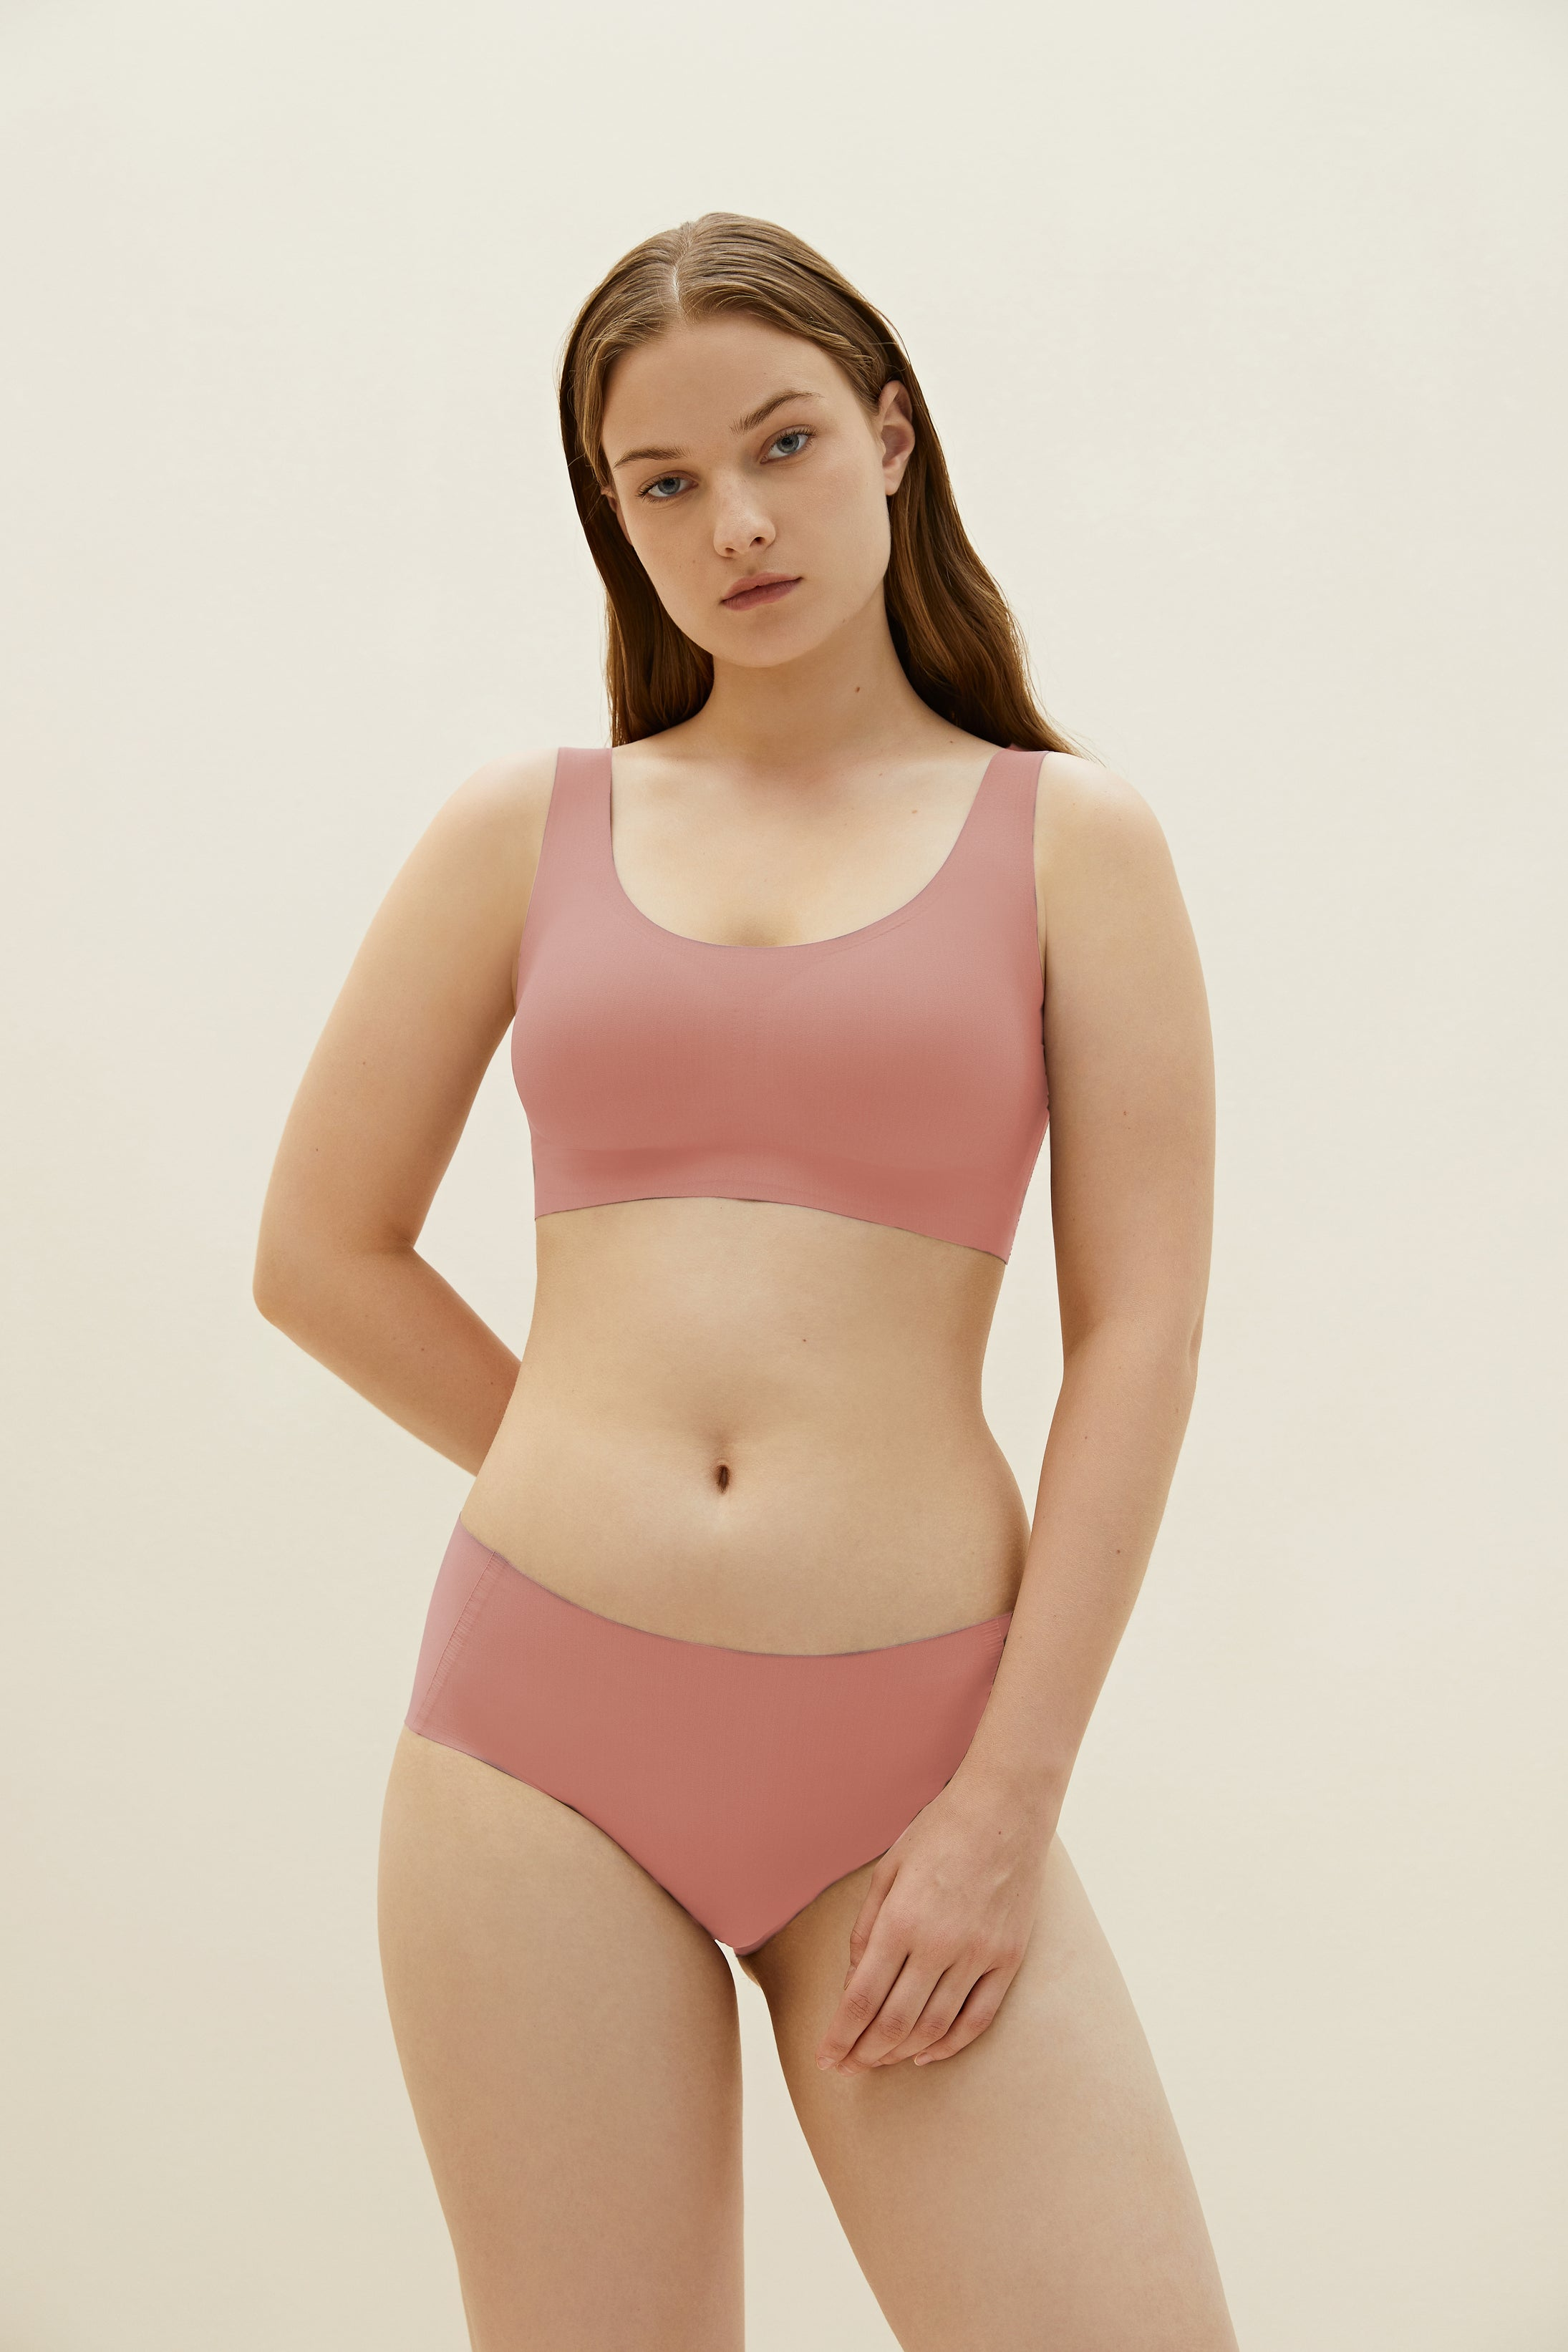 Model wearing NEIWAI's Barely Zero bra and brief set in coral.